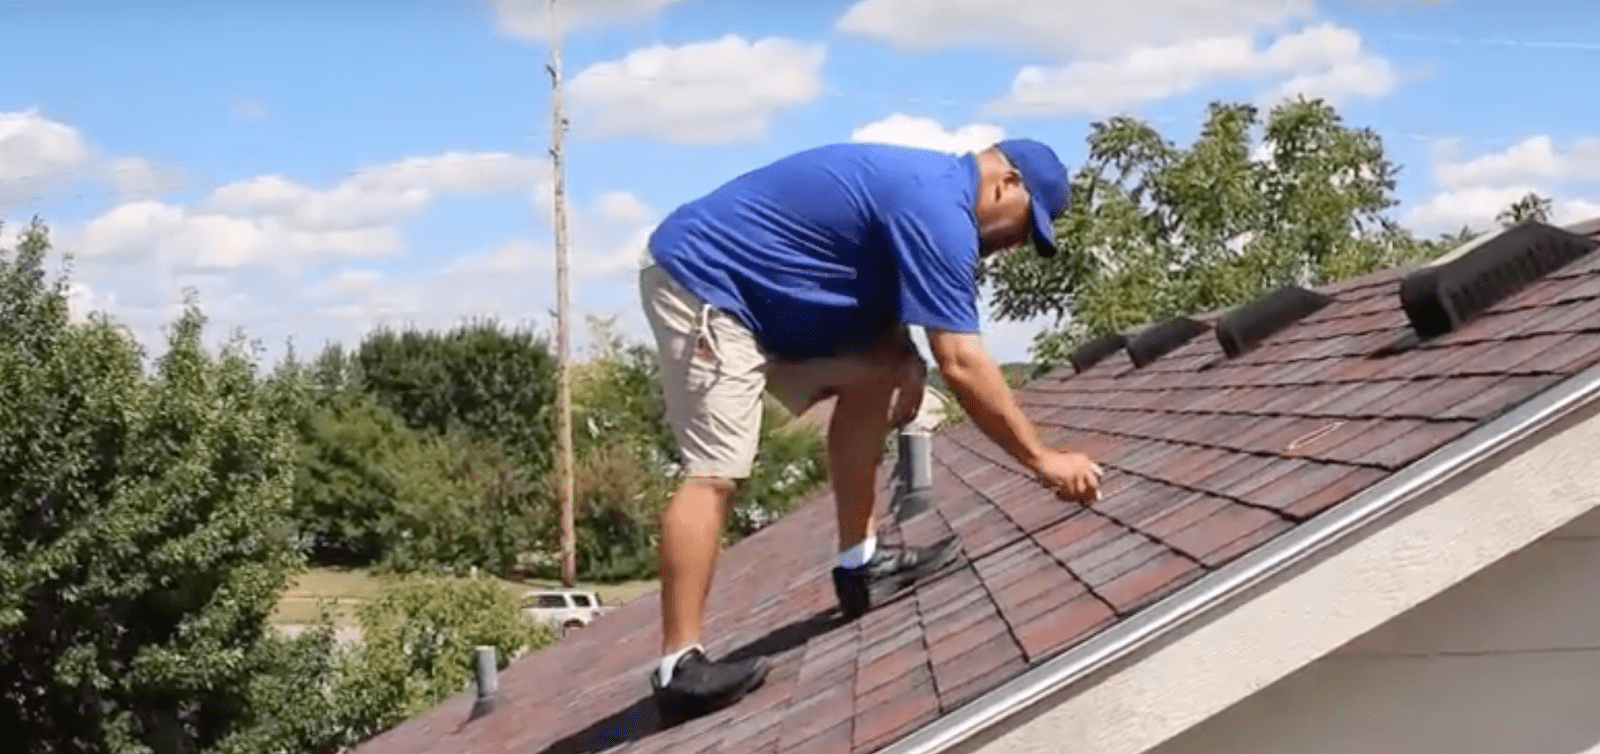 spotting roof damage while on top of a roof.